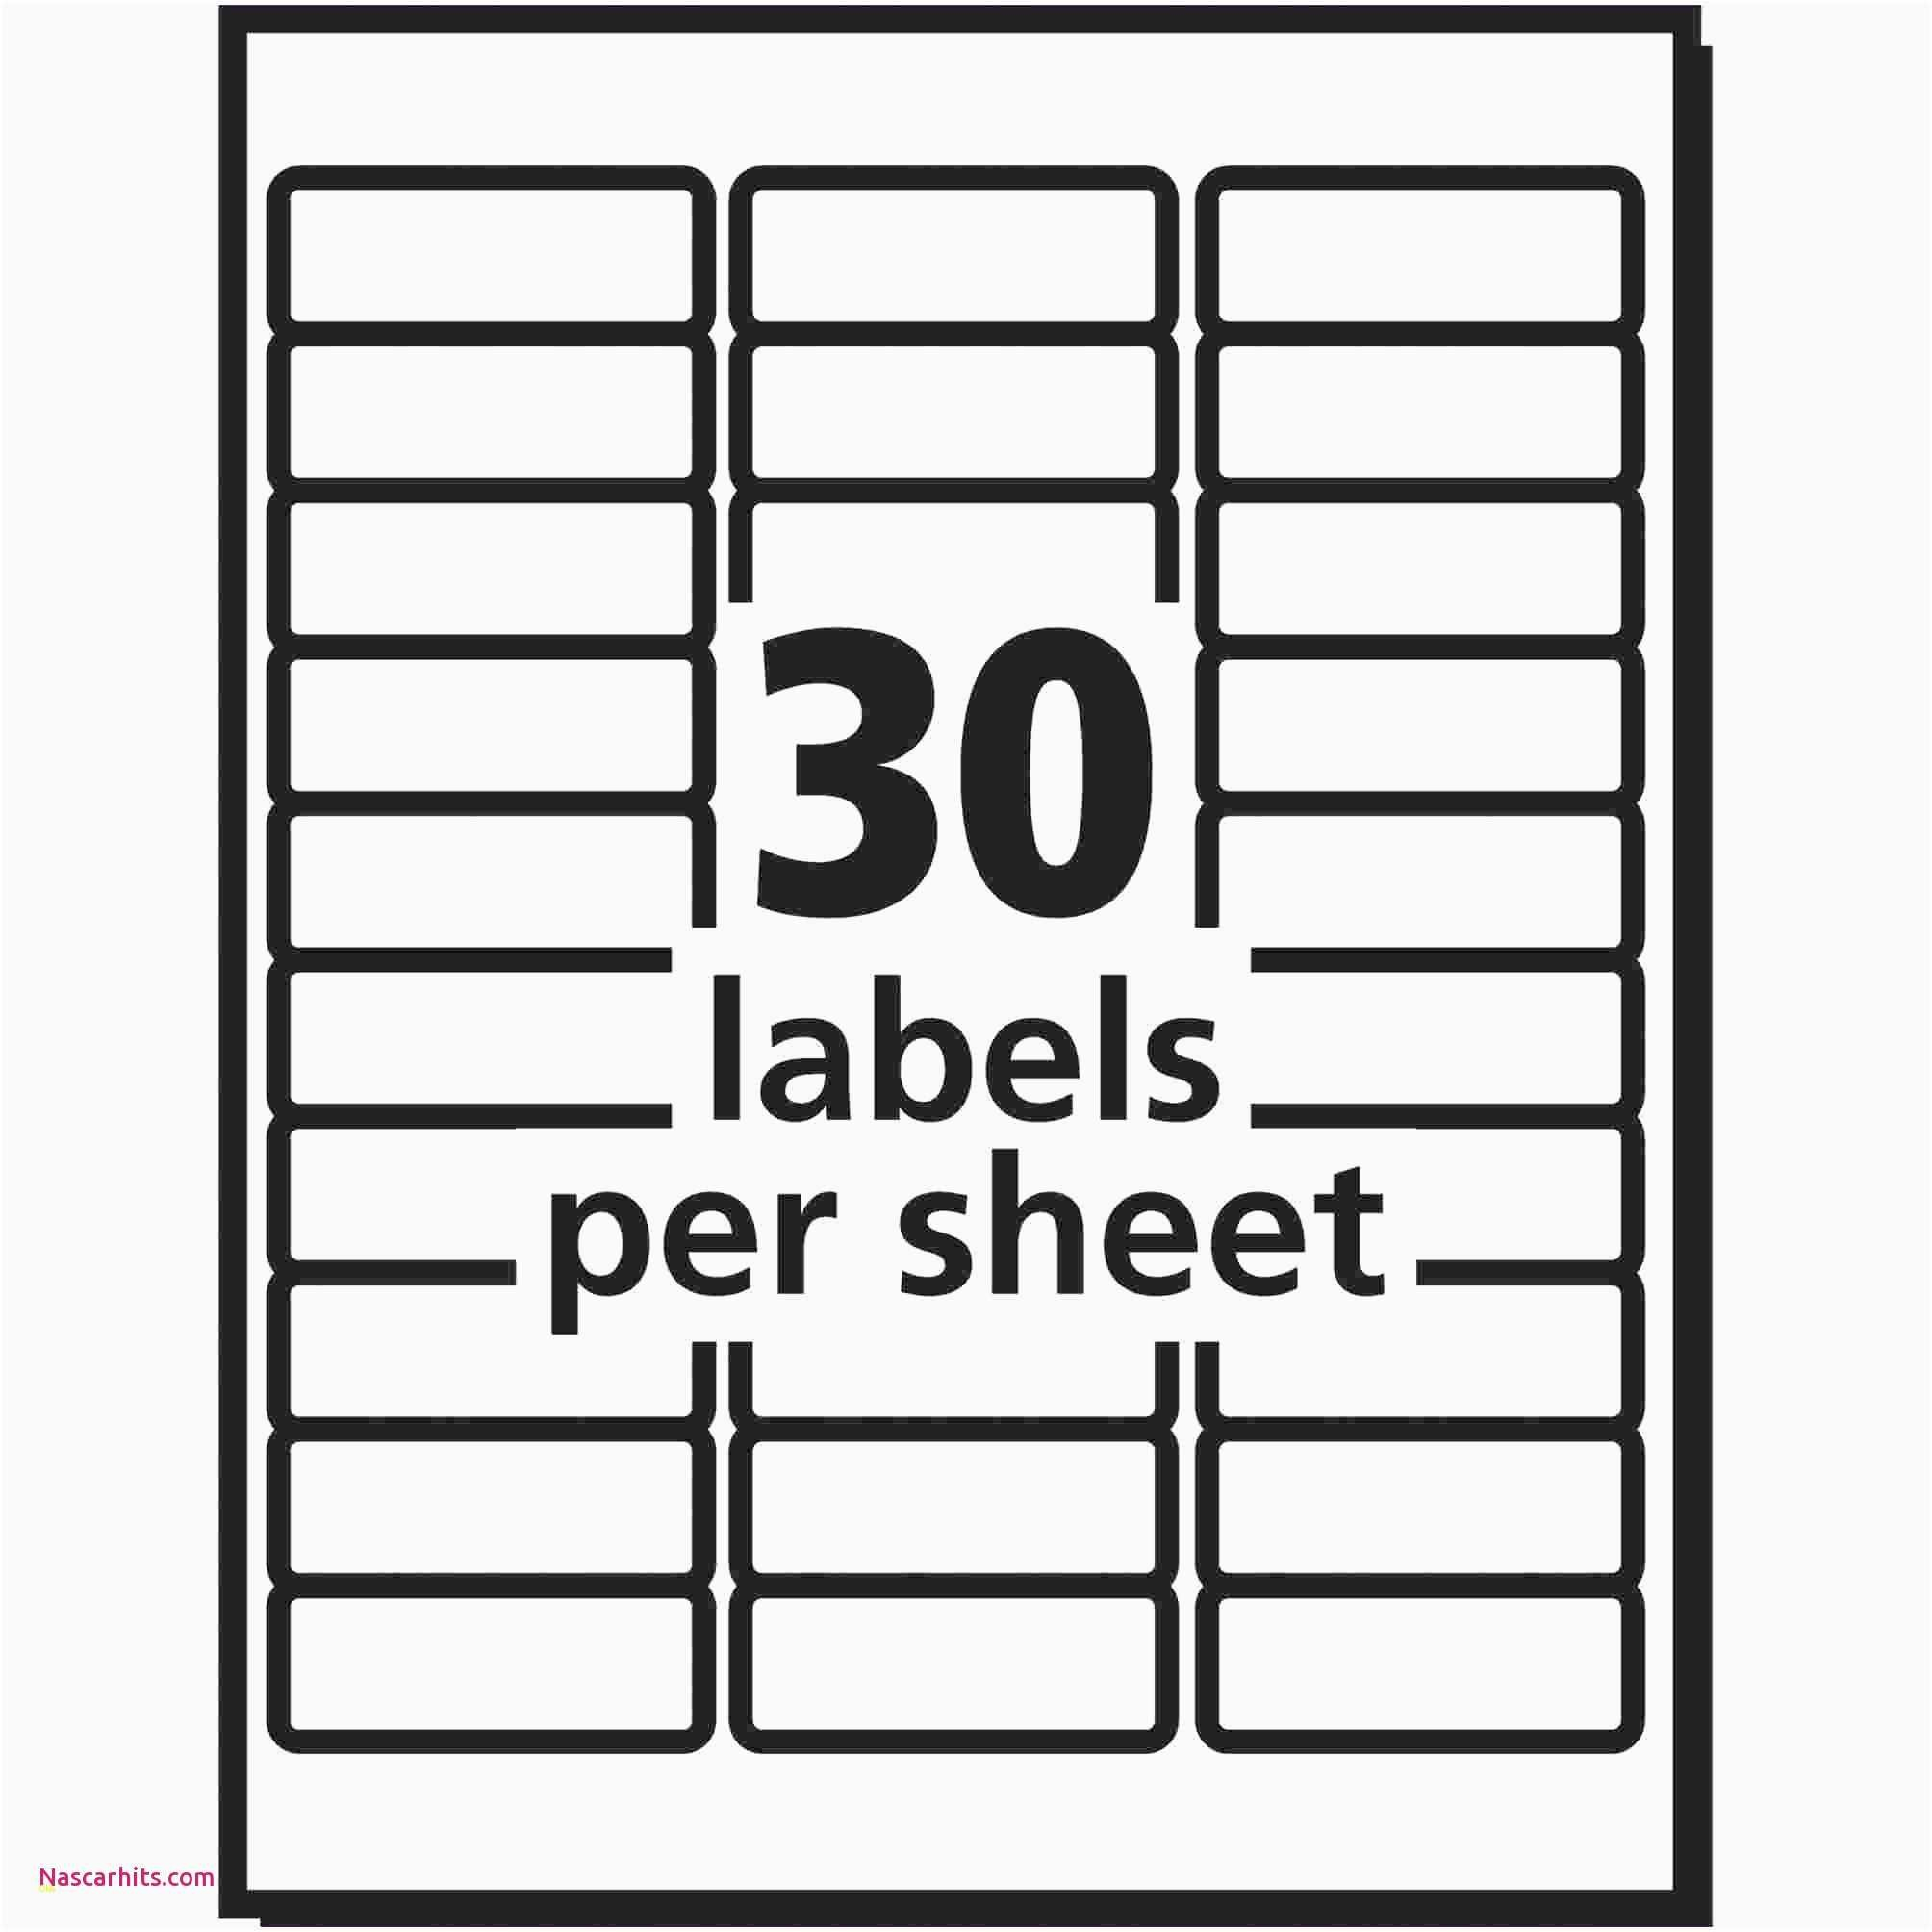 quill labels template  Free 43 Quill Label Templates Example | Free Template Example - quill labels template